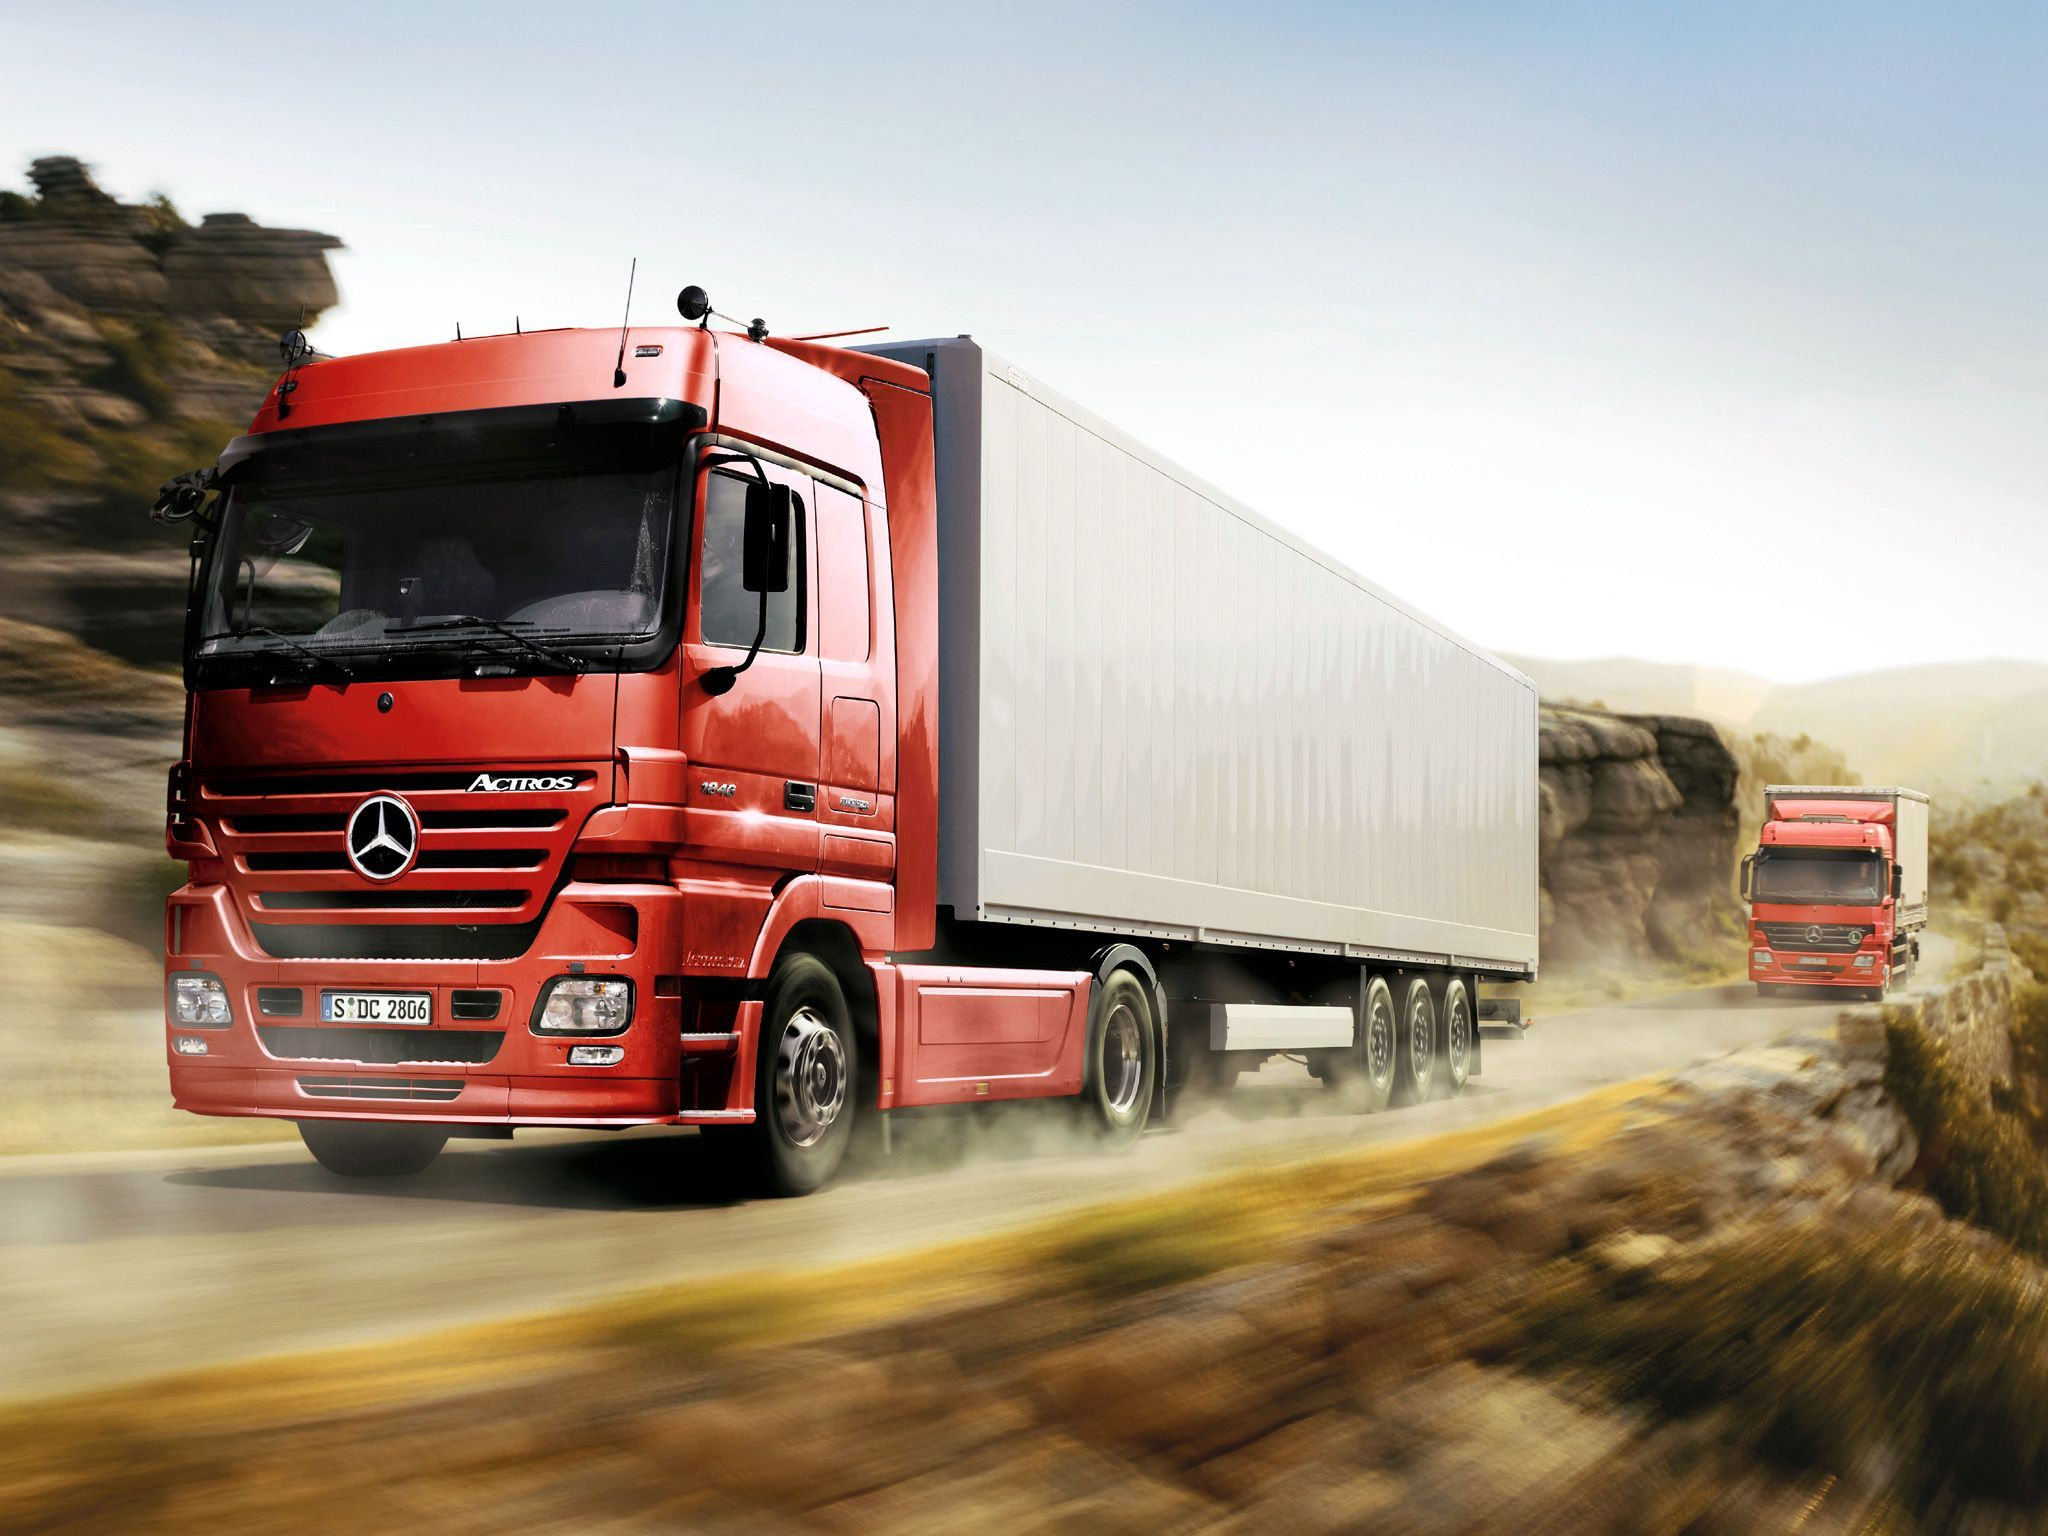 Truck Wallpapers HD Full HD Pictures Trucks,